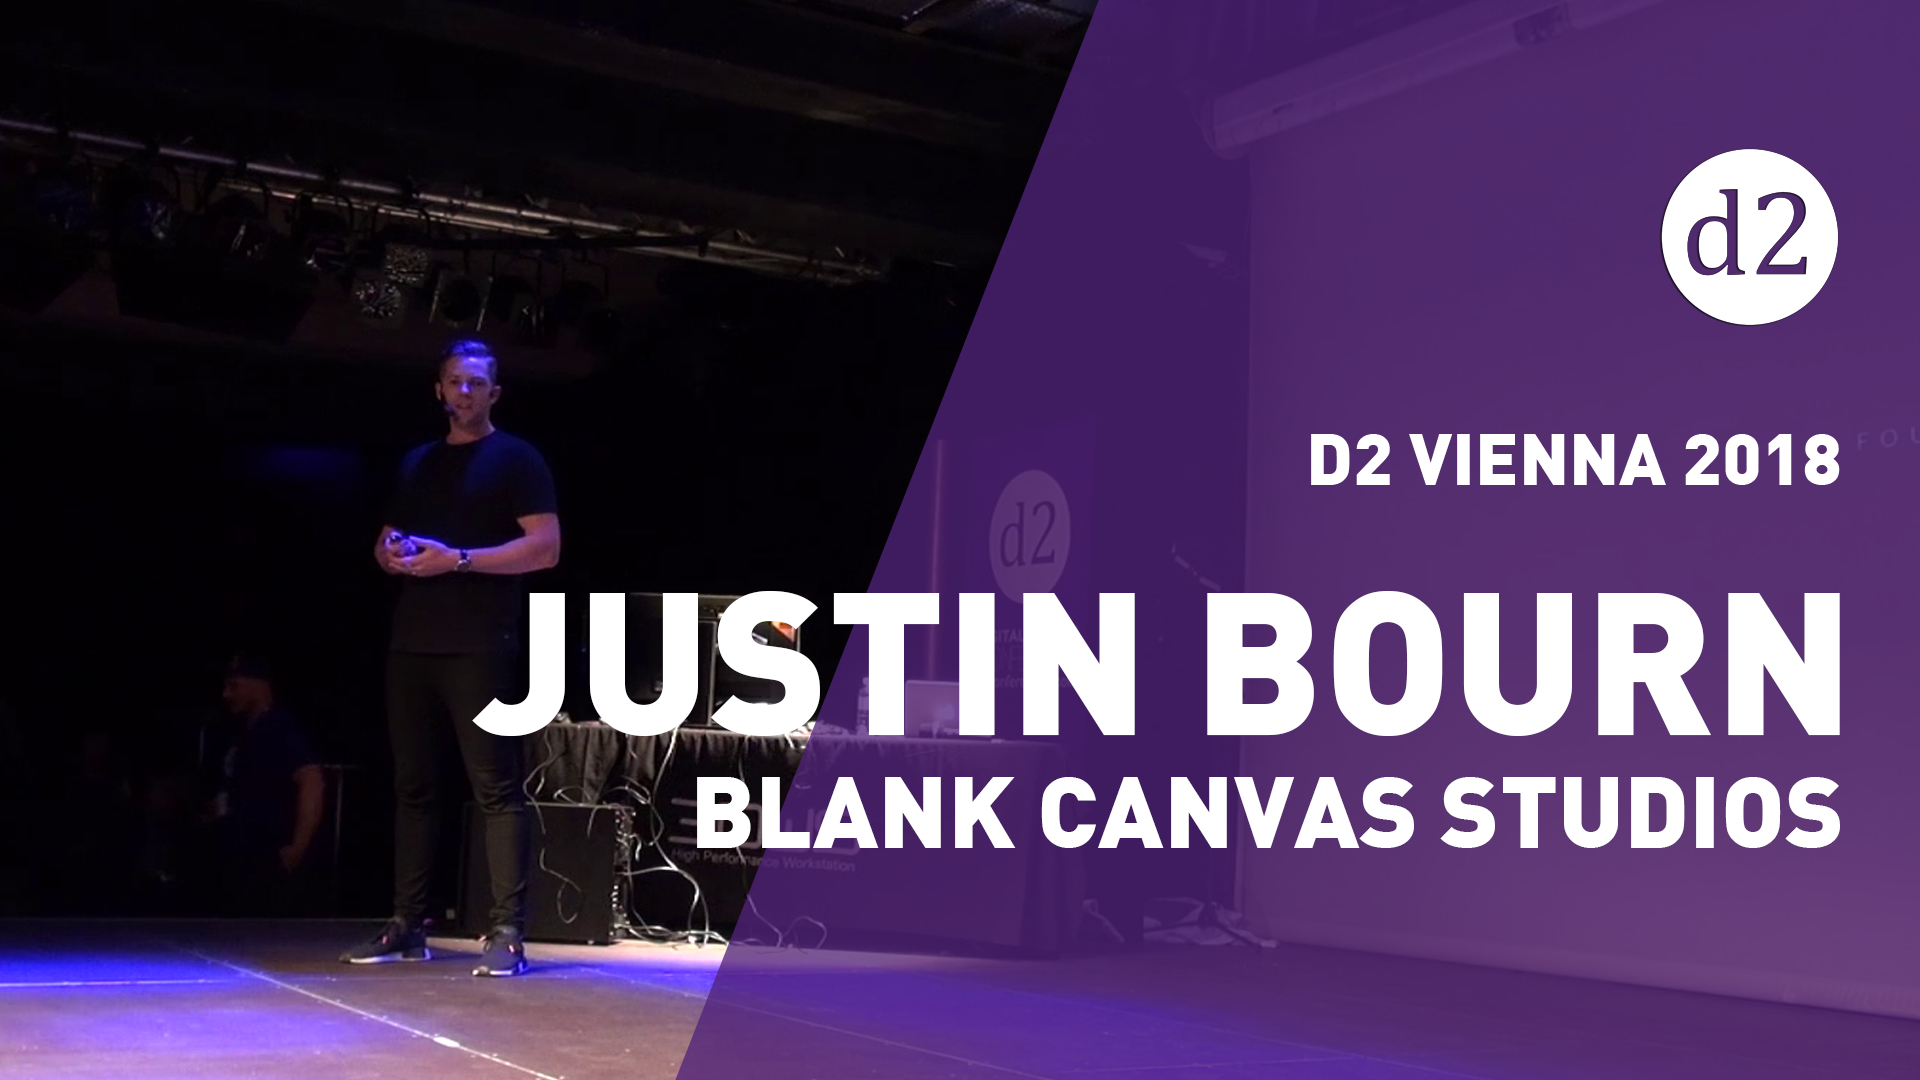 D2 Vienna 2018: Justin Bourn from Blank Canvas Studios